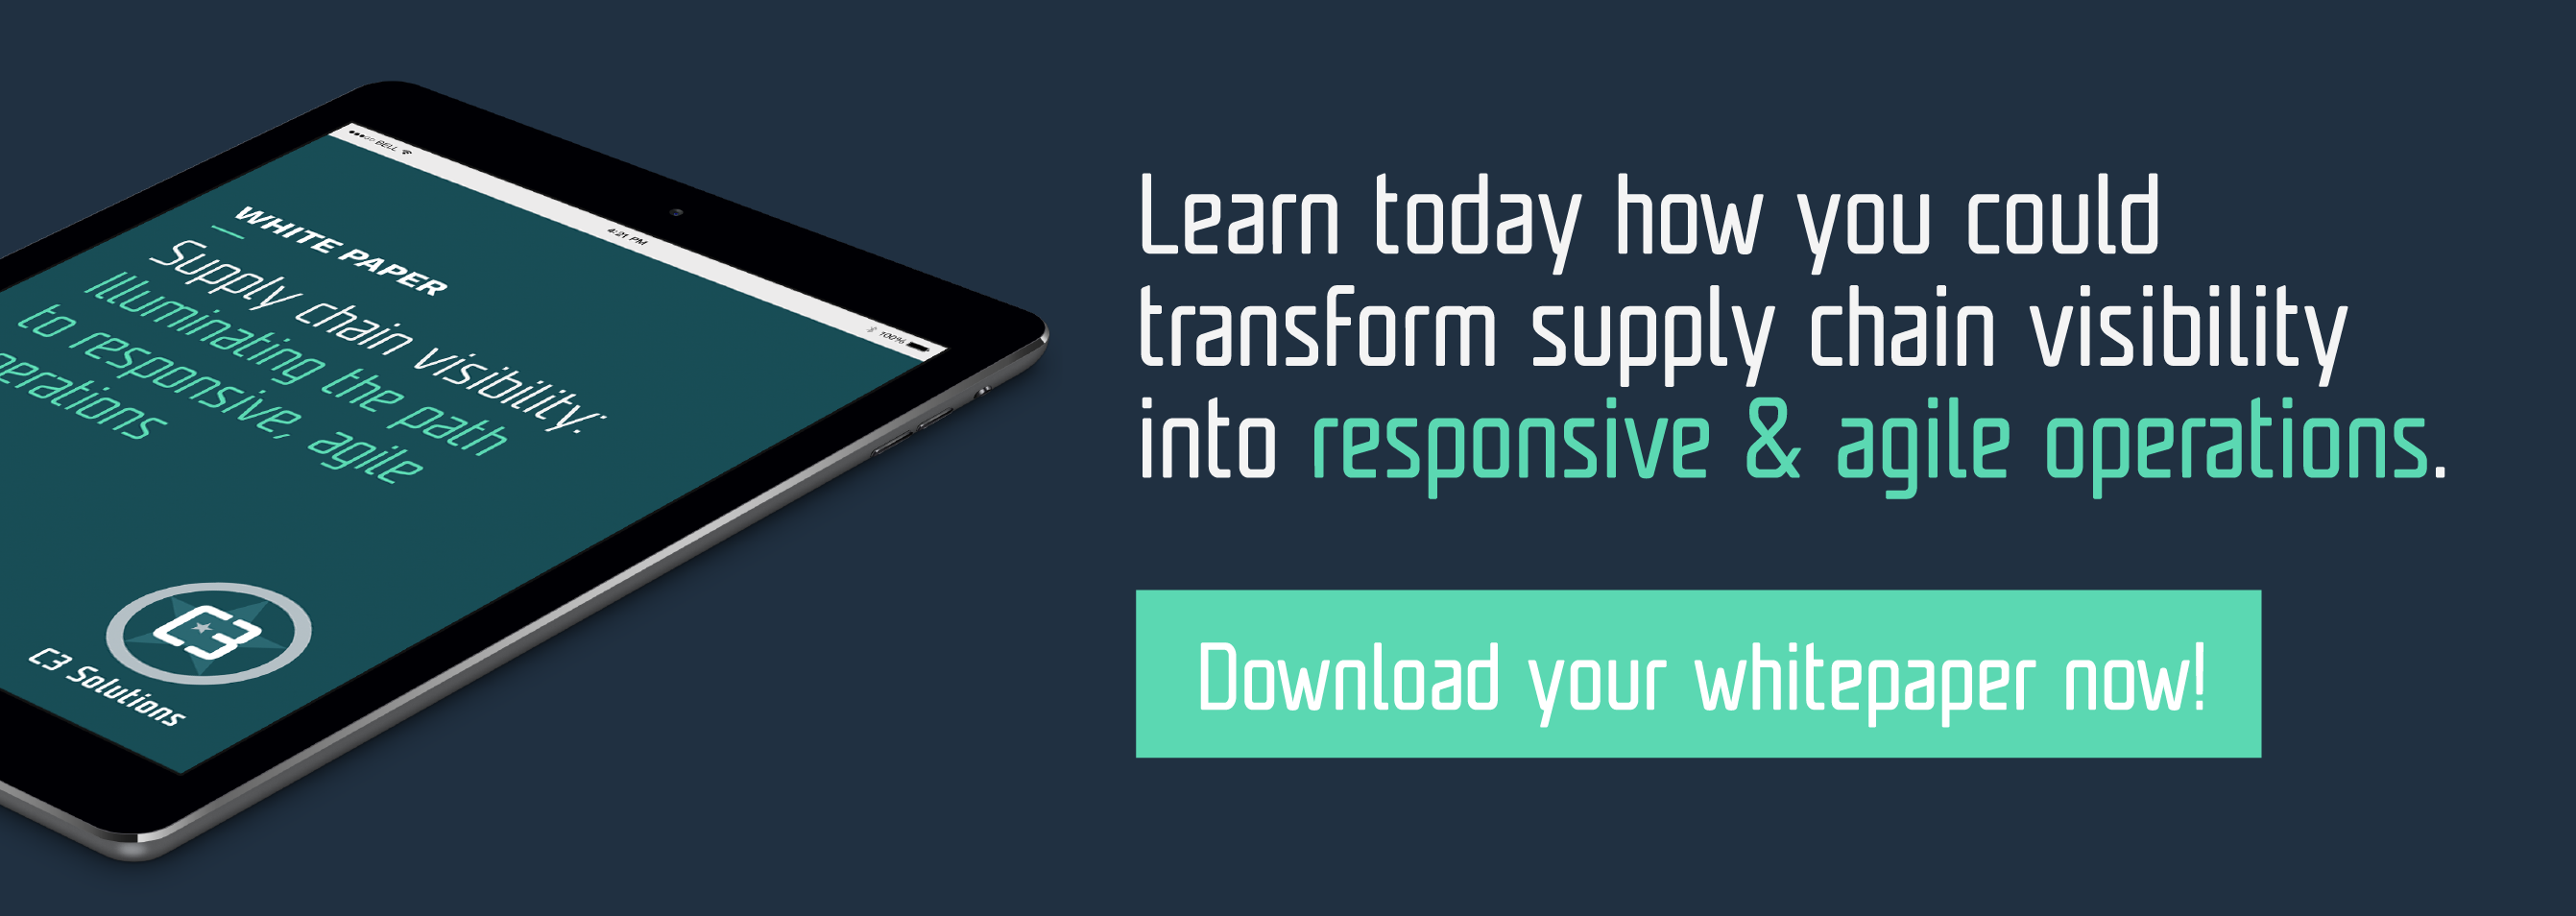 Supply Chain Visibility White Paper CTA-2.png